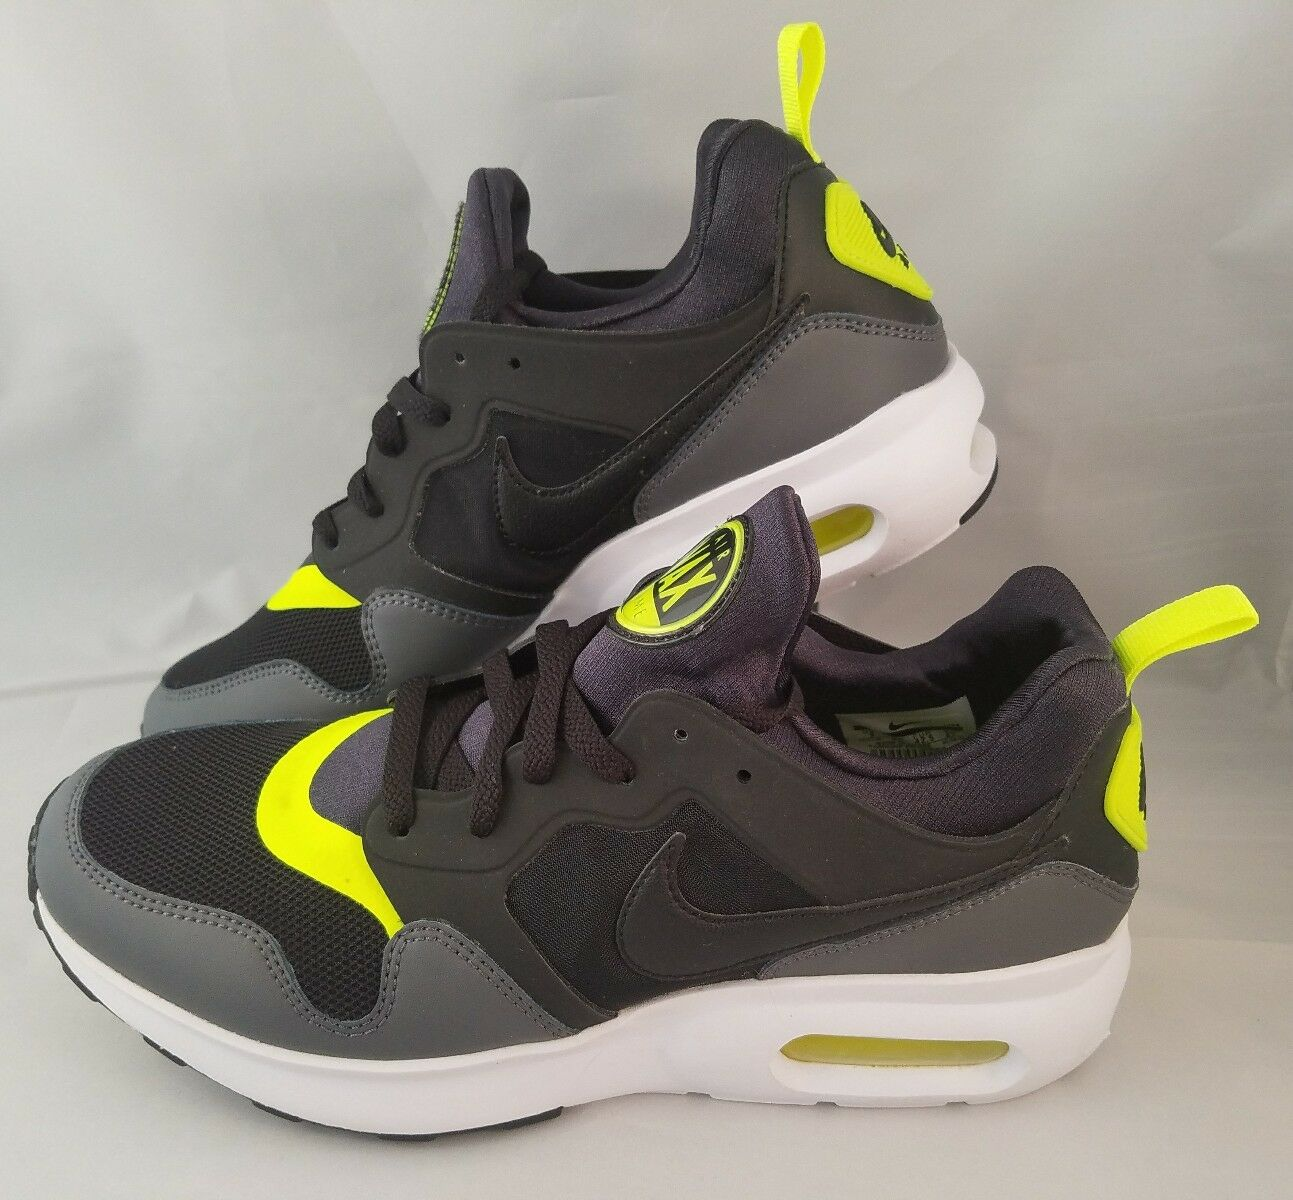 Nike Air Max Prime Running Shoes Men's Size 9 Black Gray Volt White 876068-005